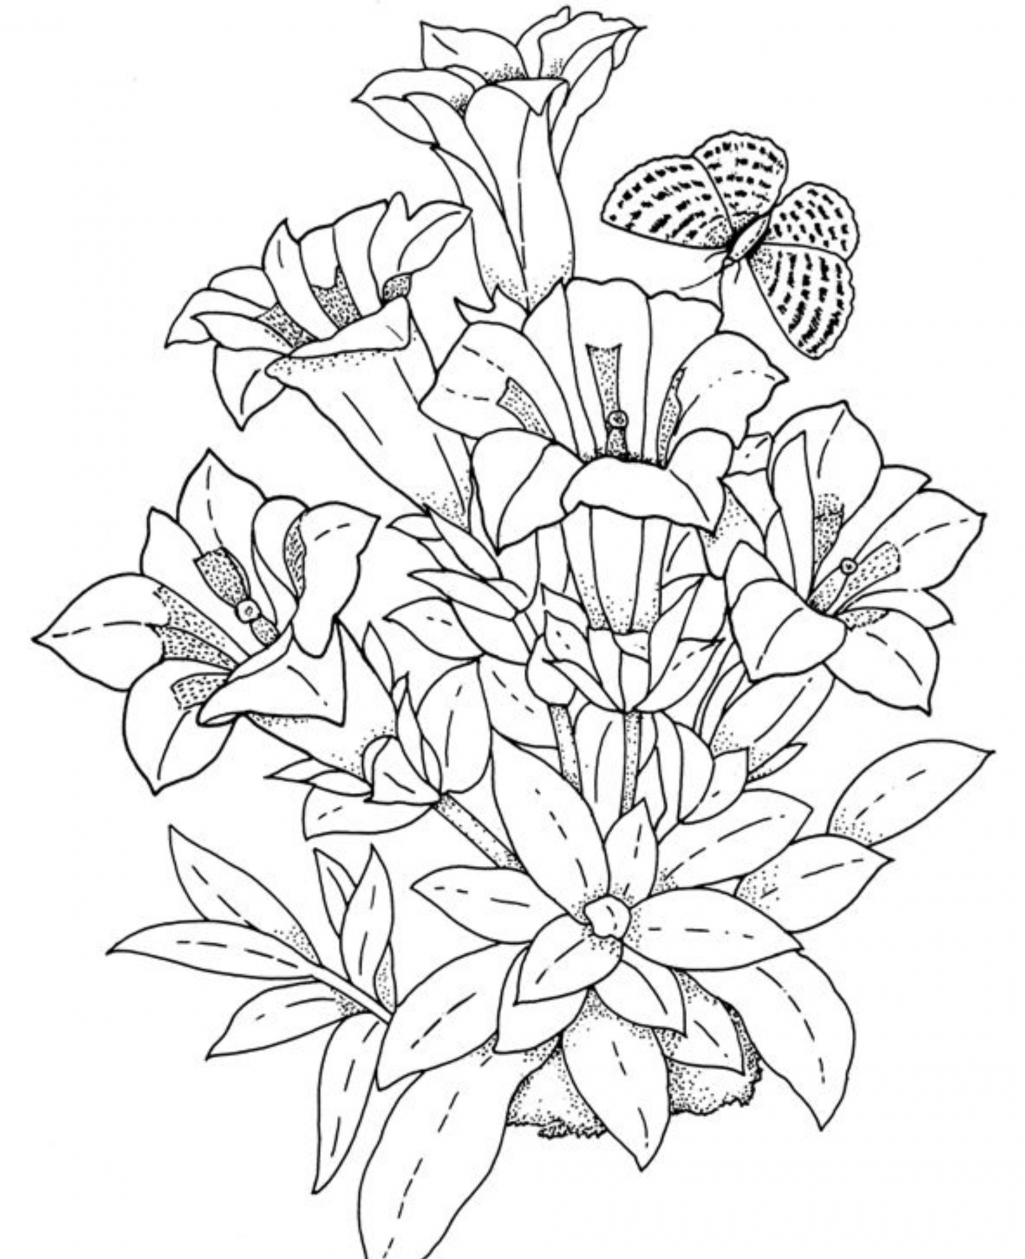 flowers outlines for colouring detailed flower coloring pages to download and print for free for outlines flowers colouring